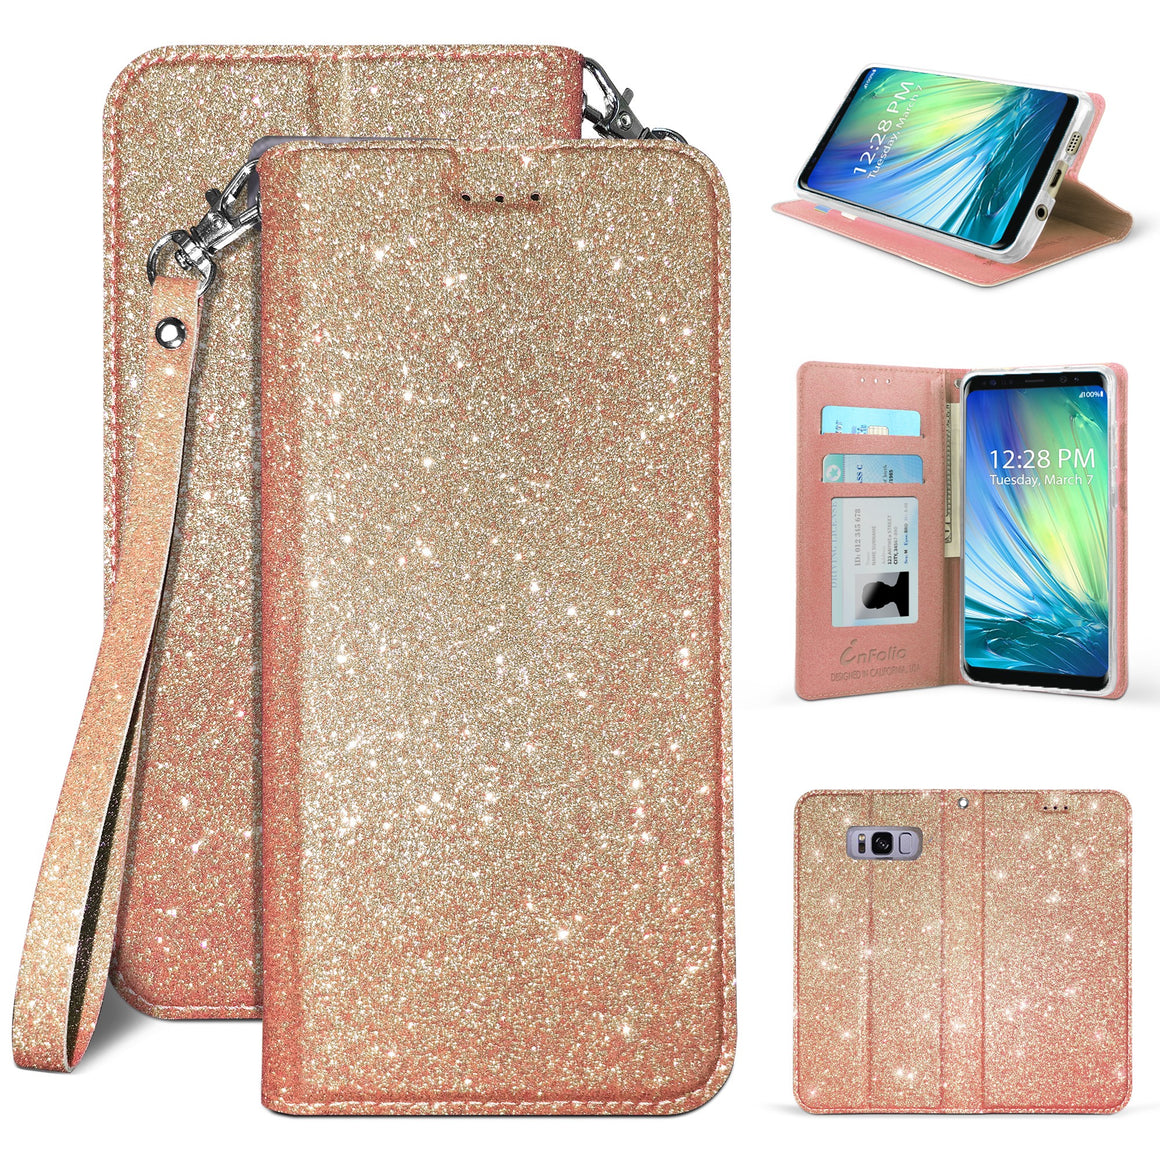 Infolio B For Samsung Galaxy S8 SM-950 Rose Gold